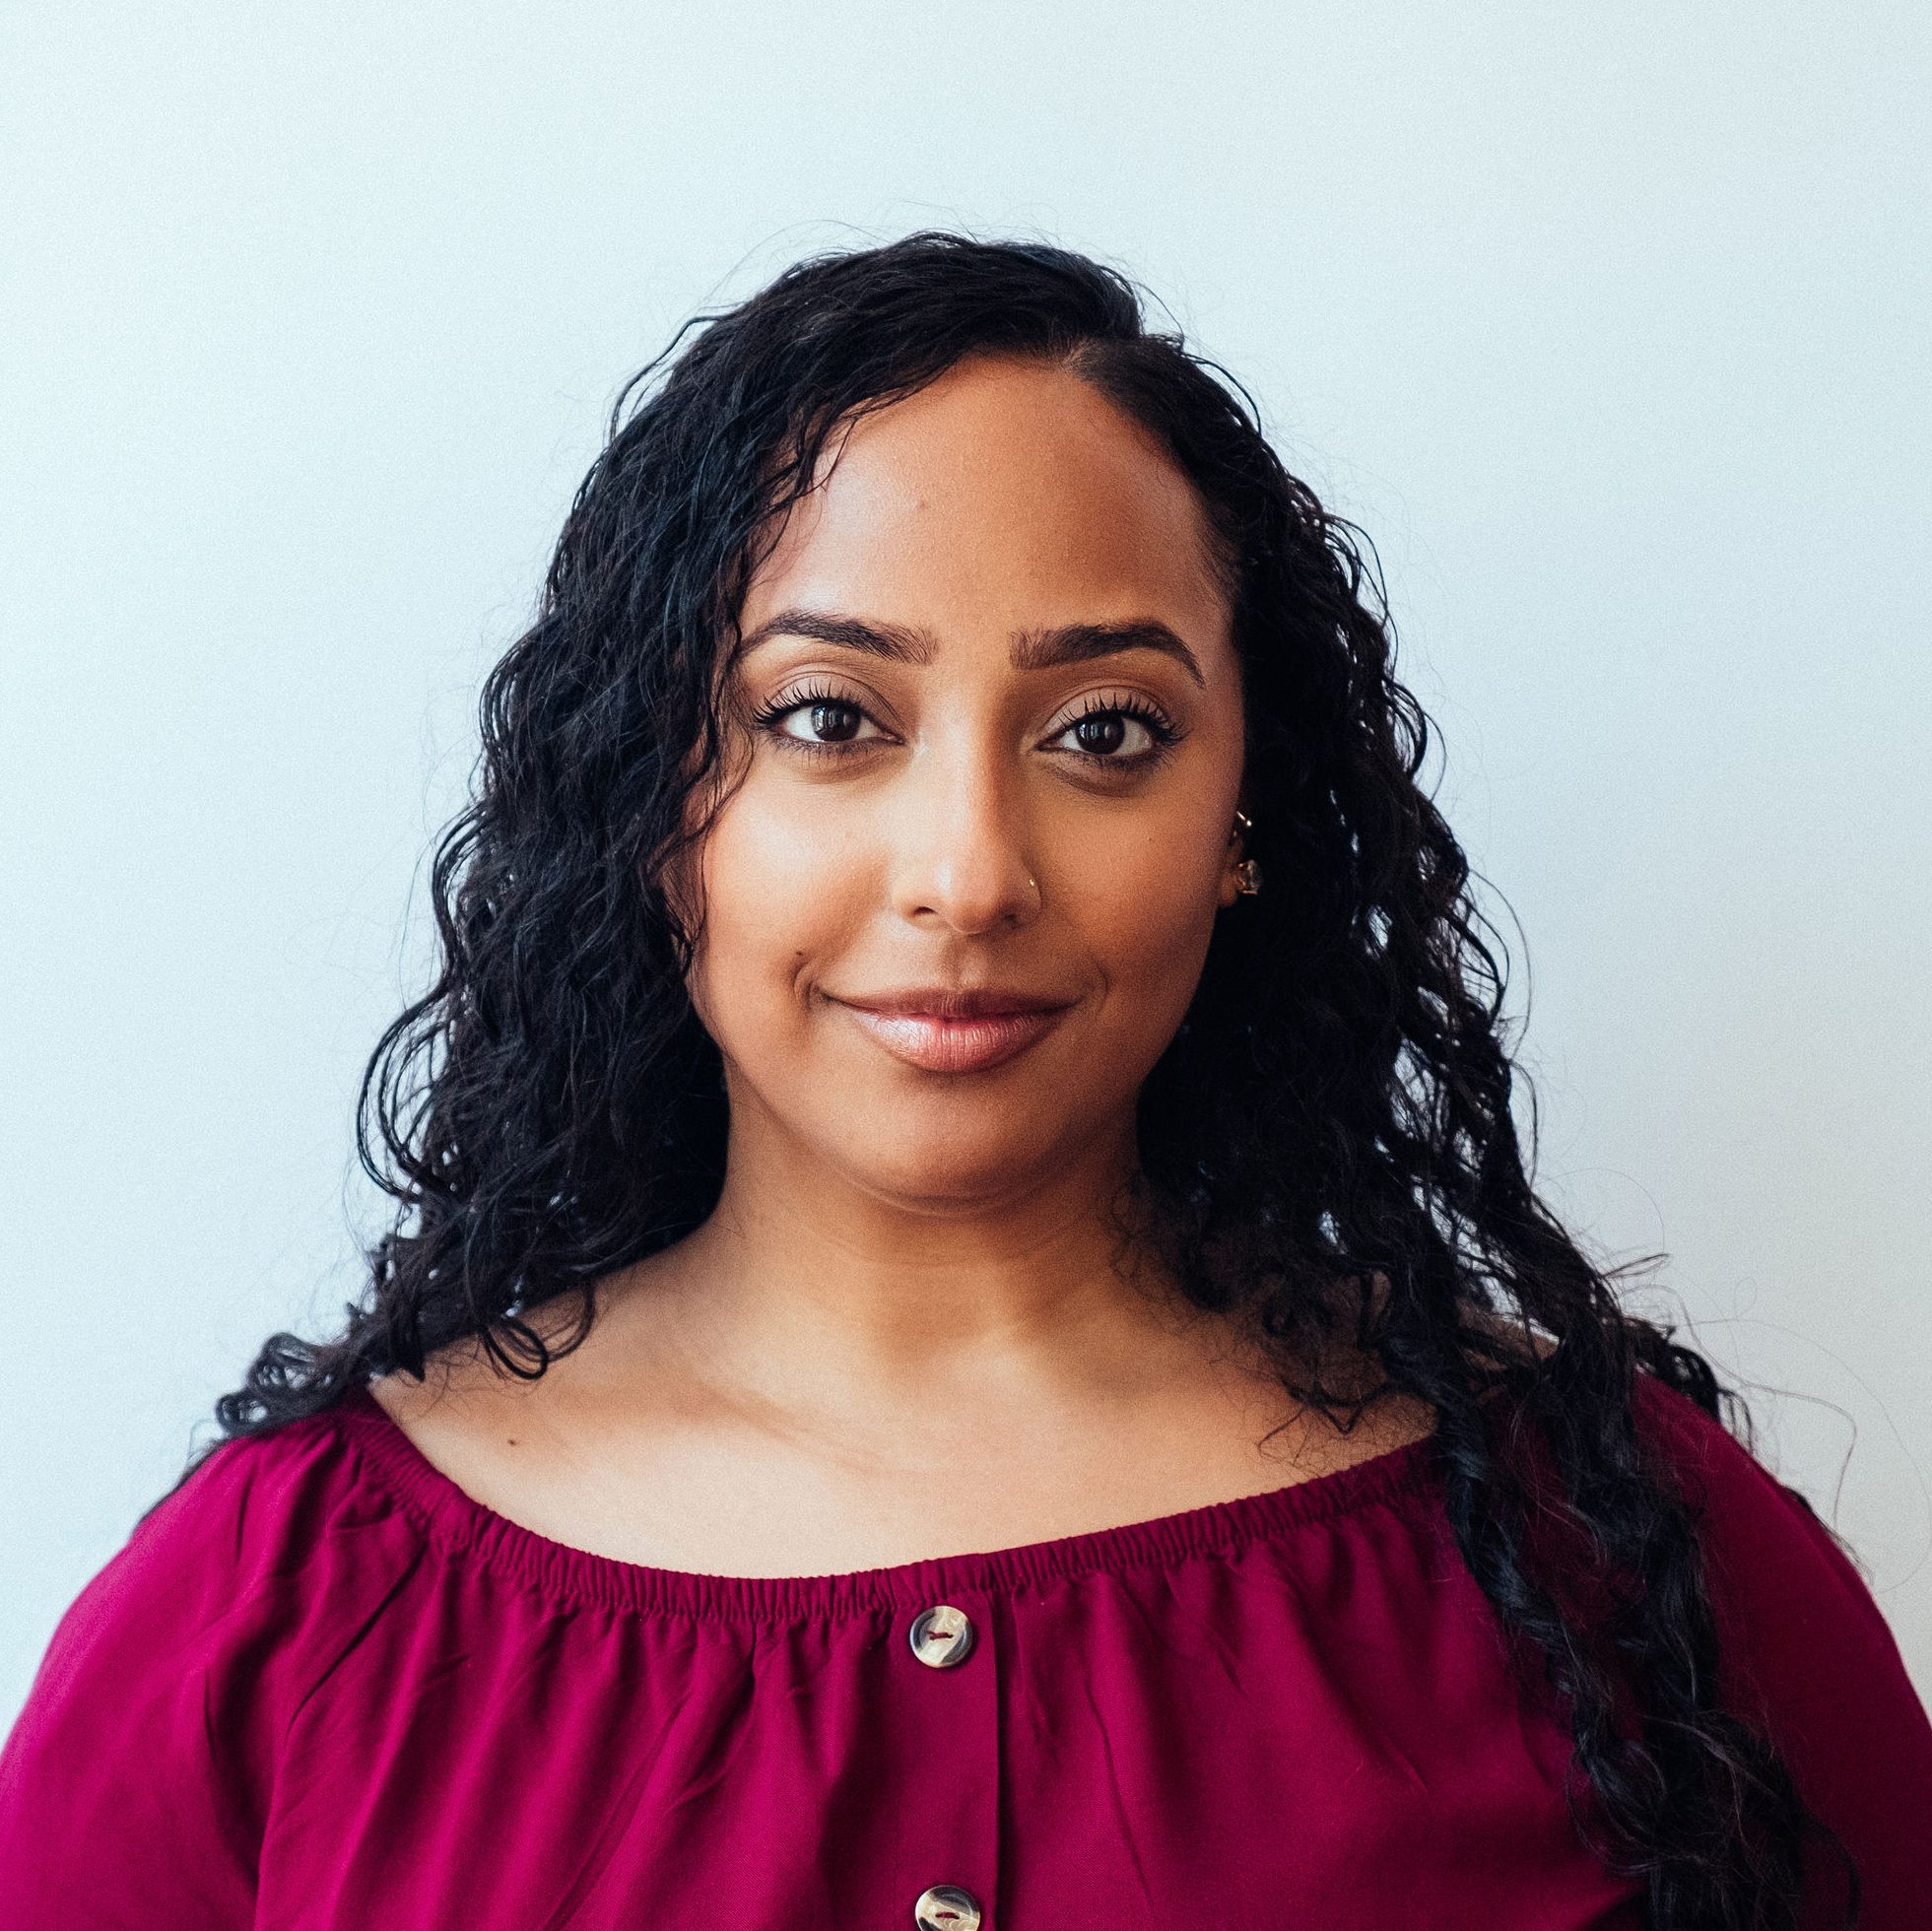 Image of New York City Psychotherapist, Suhailey Núñez, who specializes in Racial issues, women